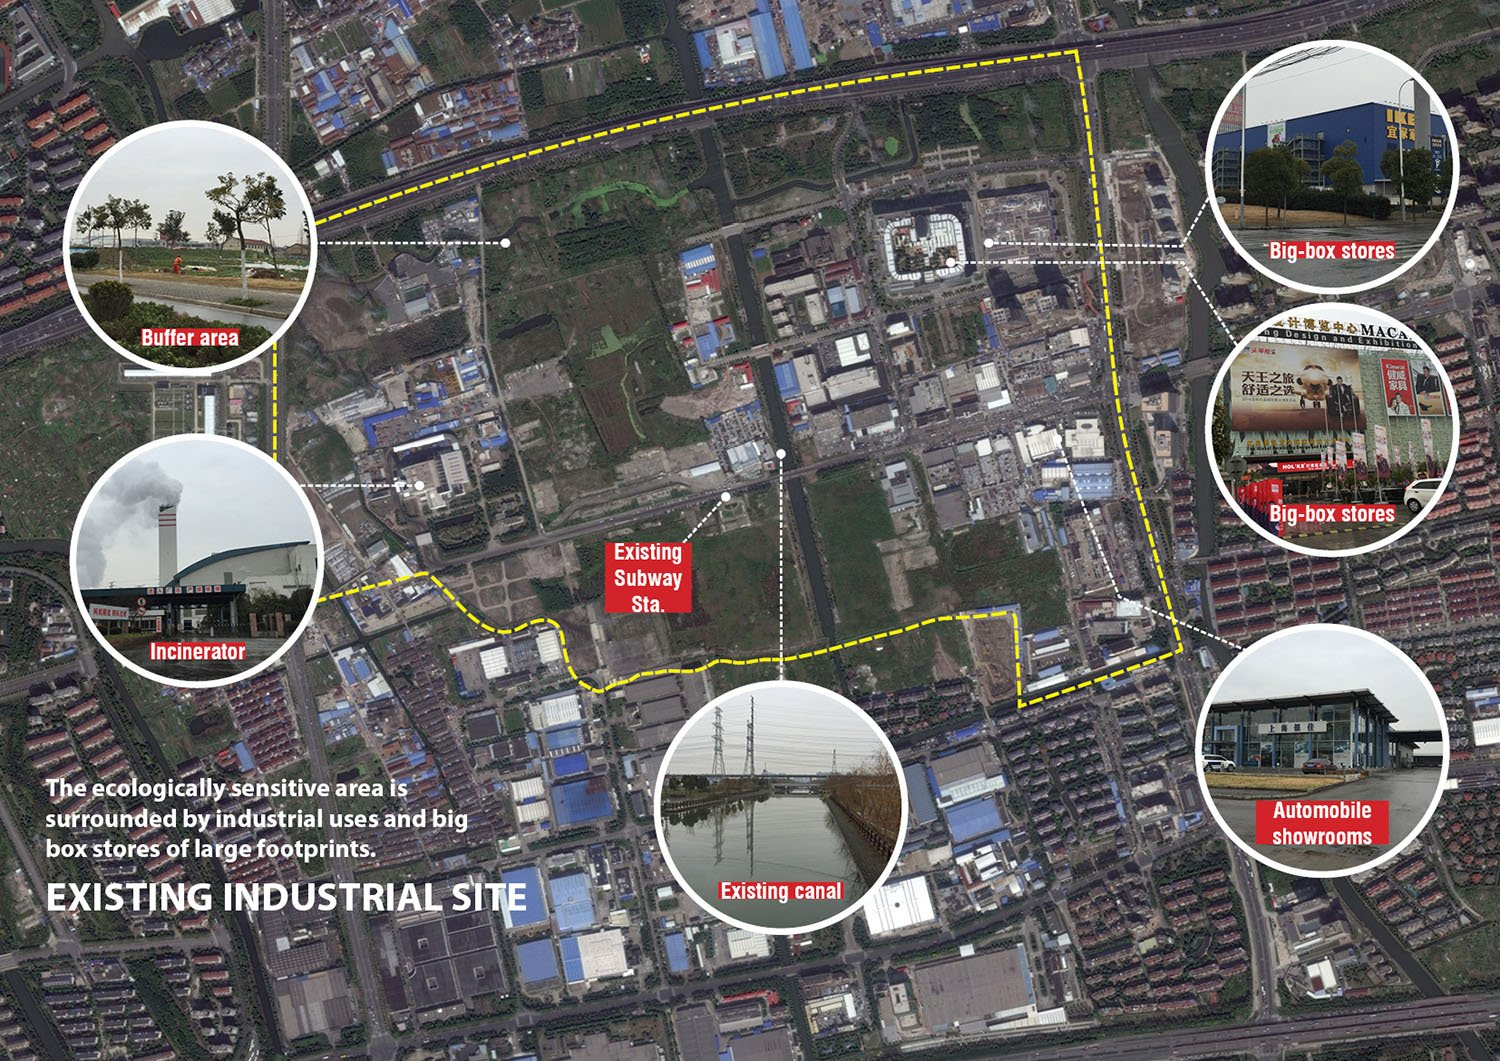 EXISTING INDUSTRIAL SITE }